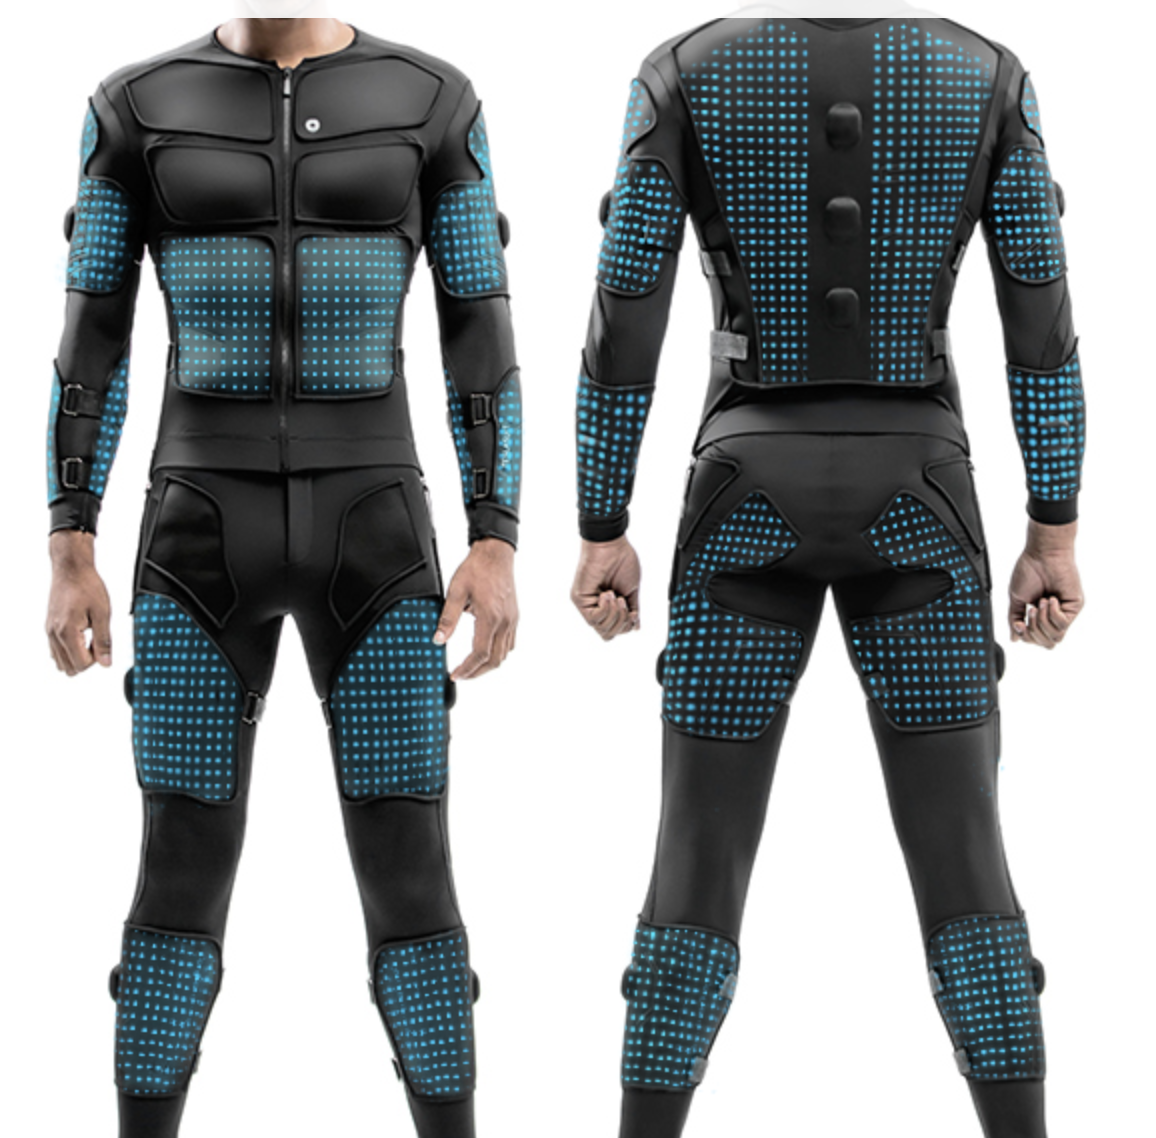 The world's first fully integrated smart clothing apparel with